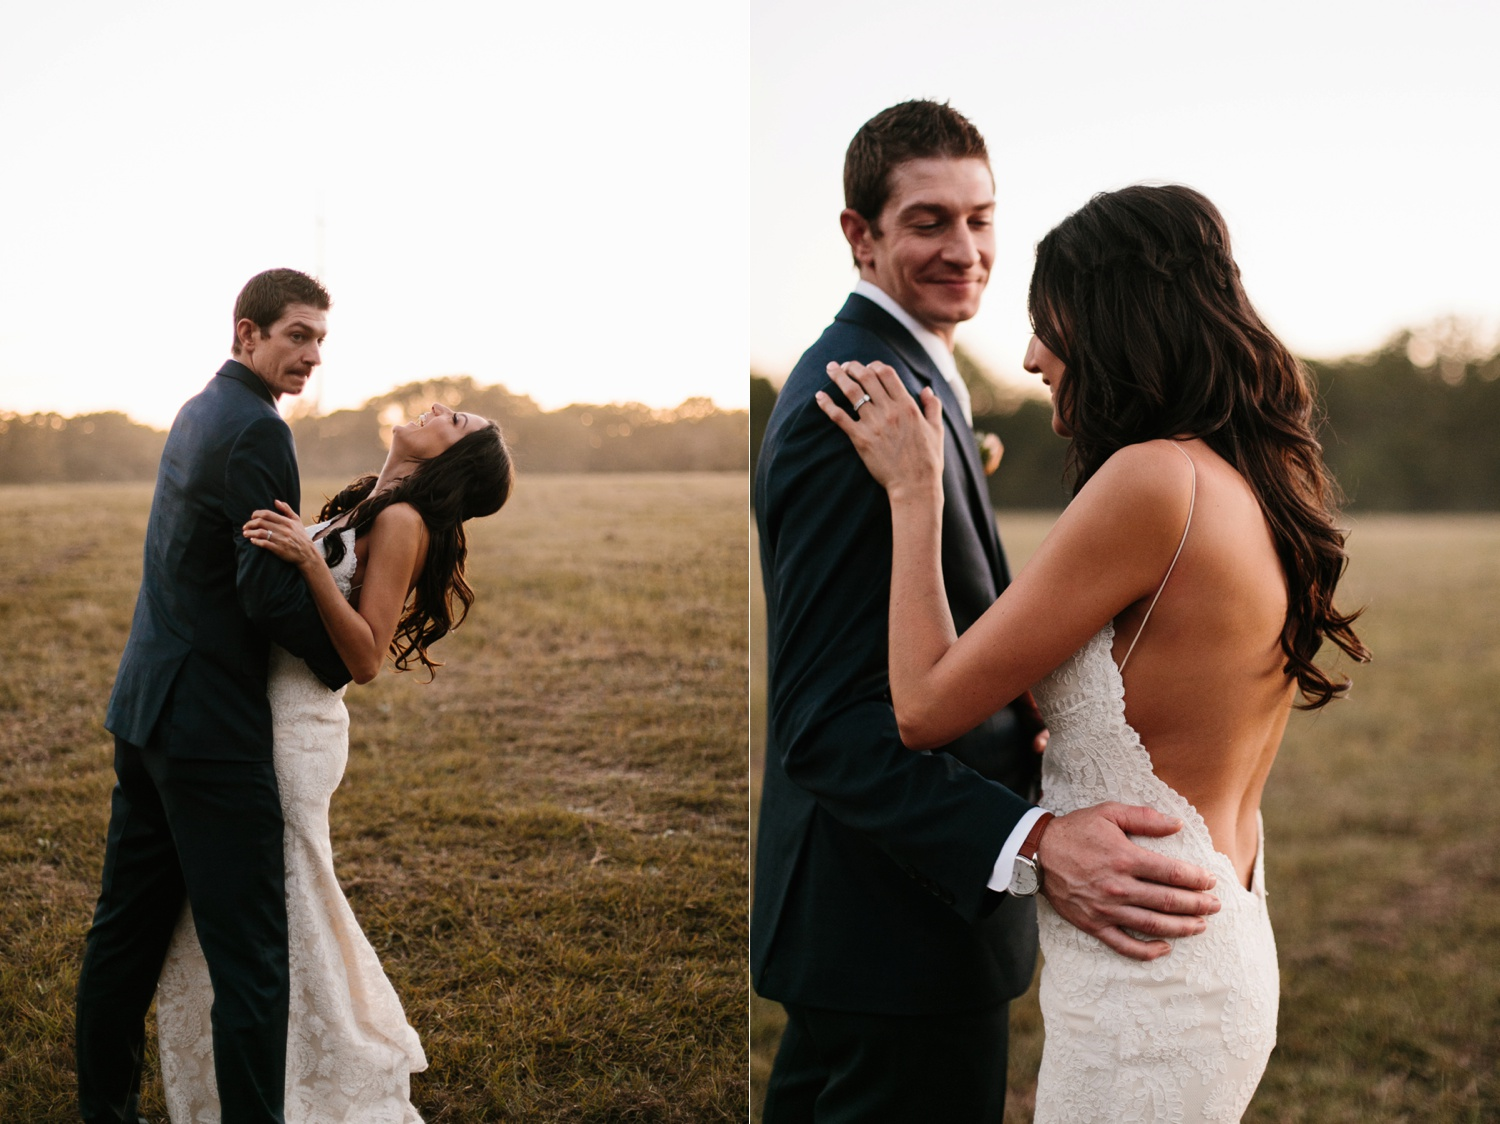 Erica + Henry | a bohemian inspired wedding at Chandlers Gardens in Salina, TX by North Texas Wedding Photographer Rachel Meagan Photography 127